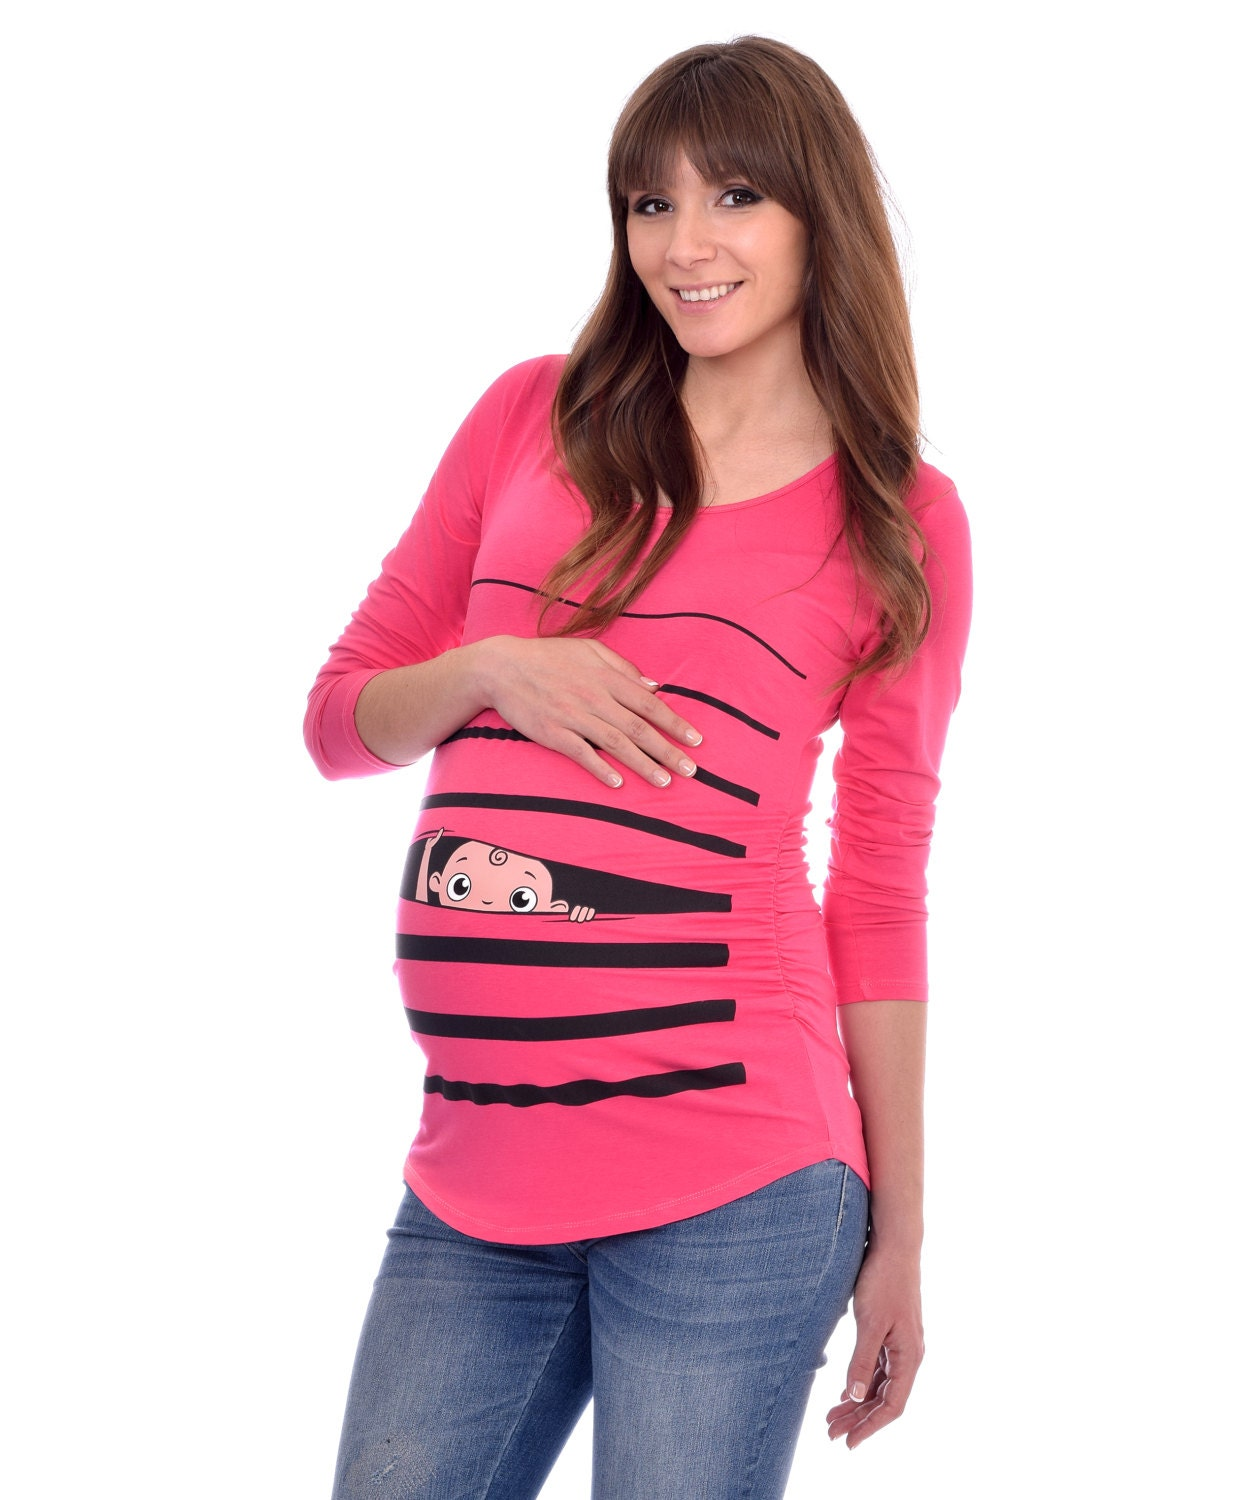 Maternity Maternity clothes Baby Shower Maternity Clothing